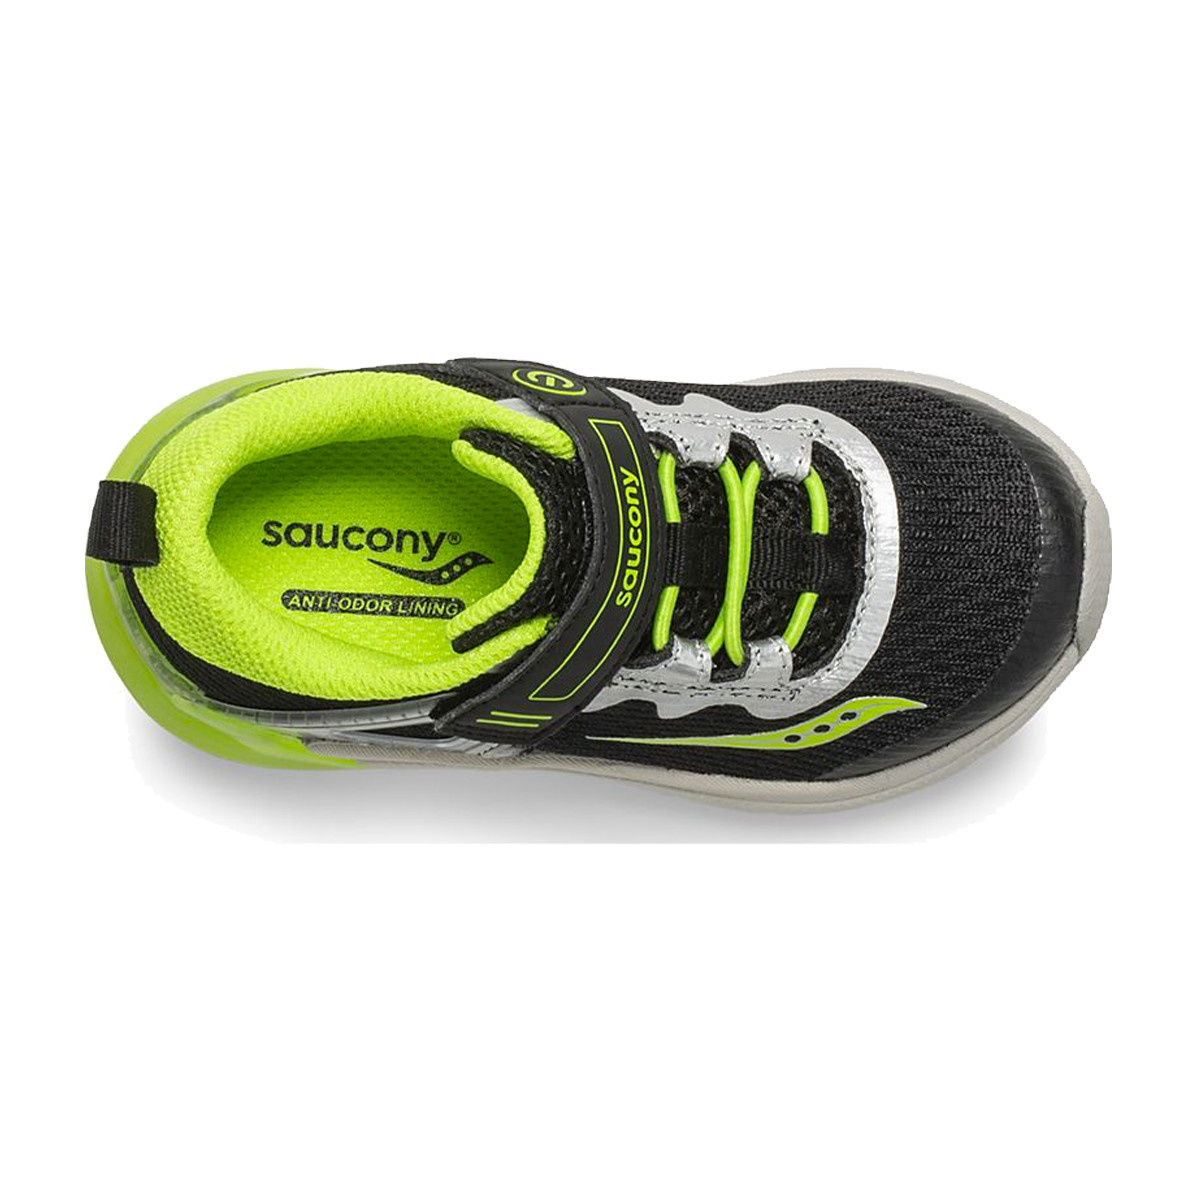 Saucony Saucony Baby Flash Glow Black/Green